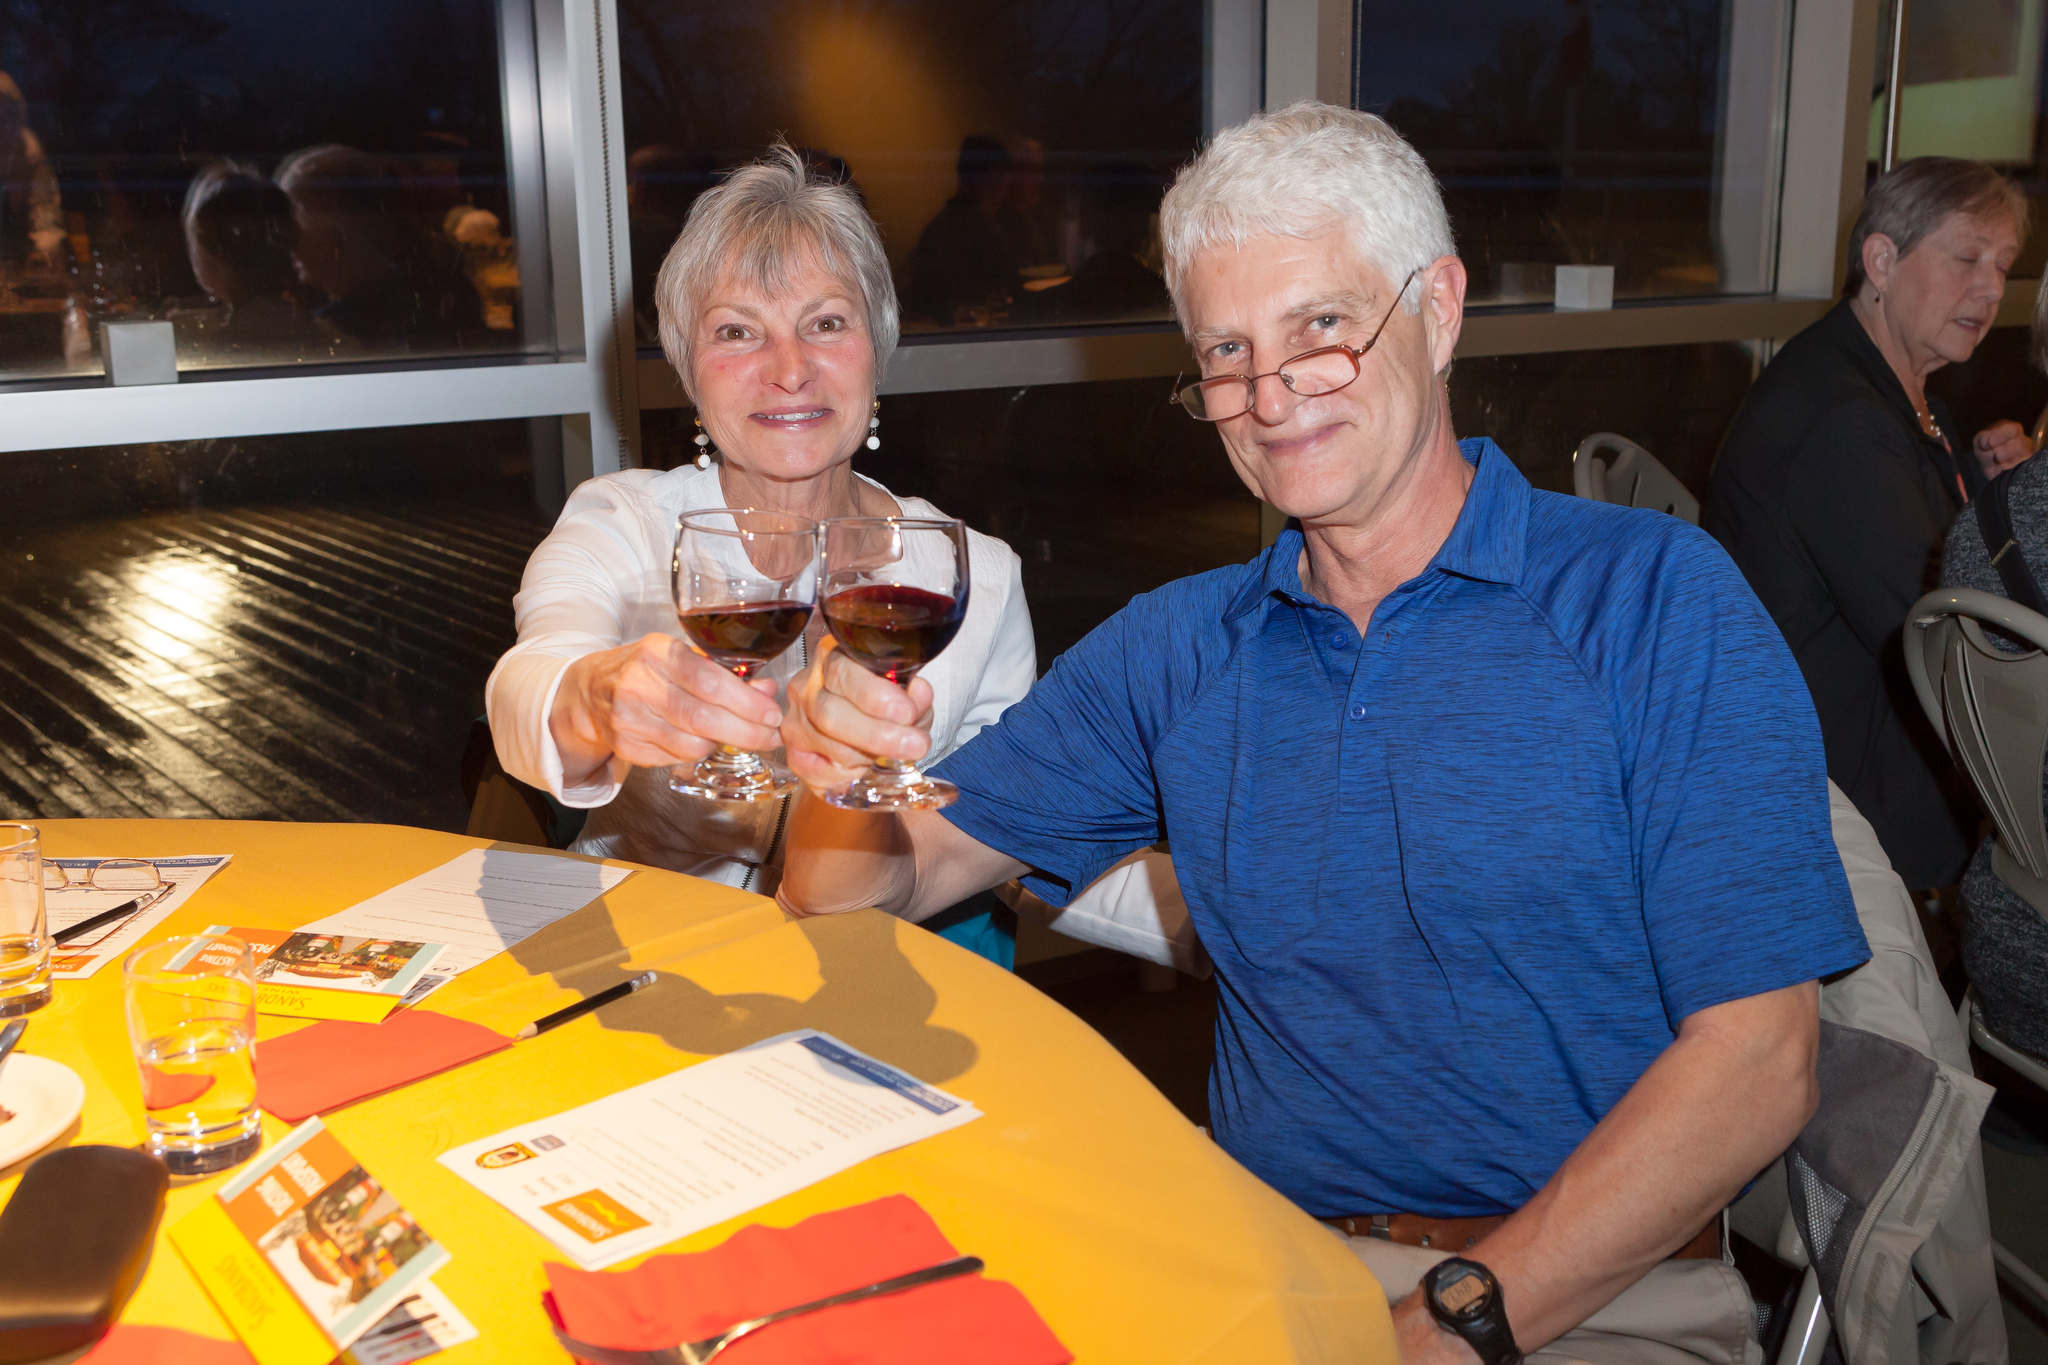 Image of a man and woman at a wine tasting